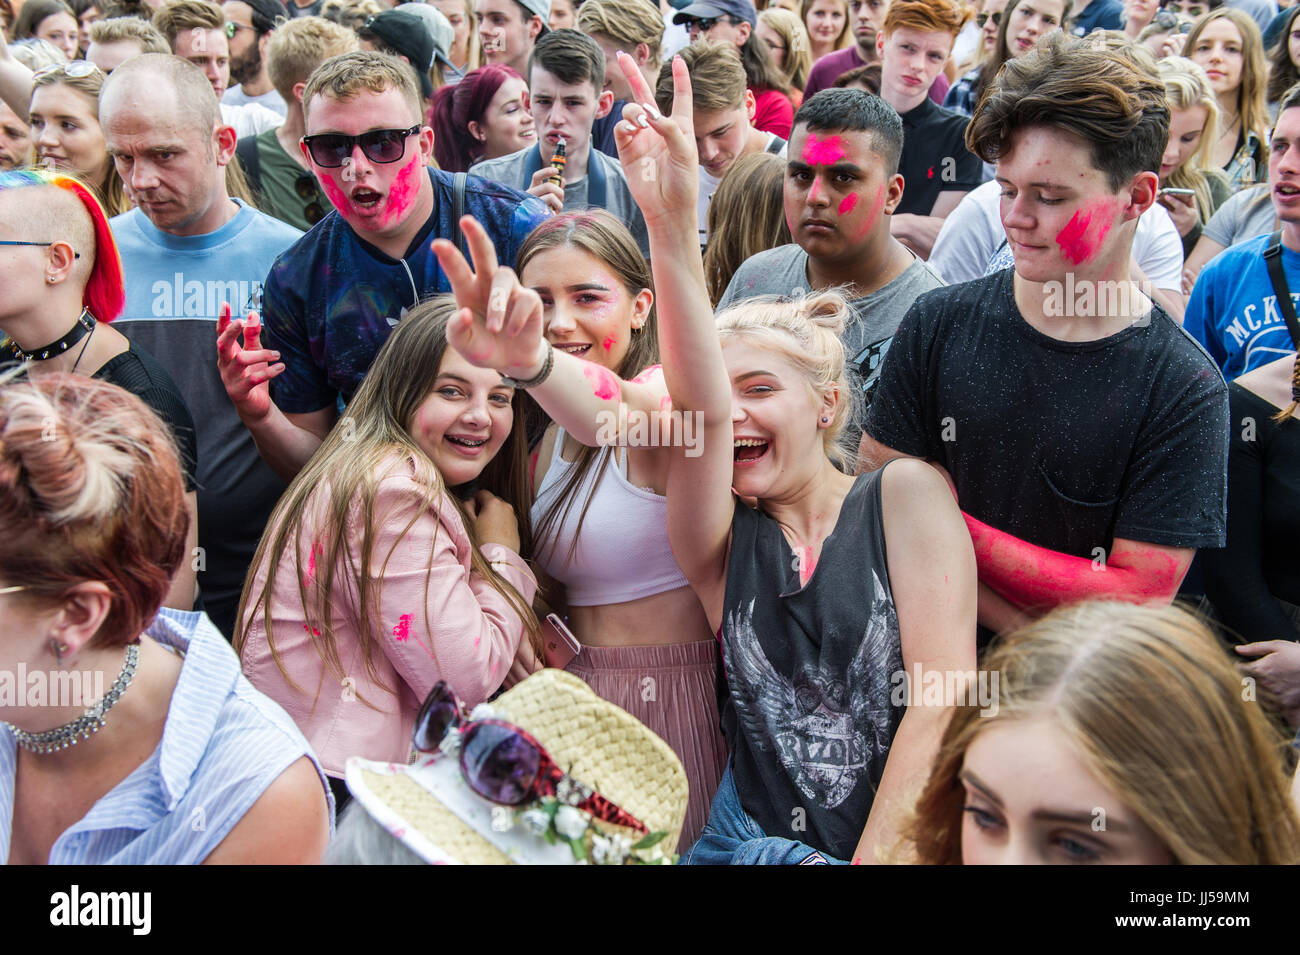 Female teenage music fans pose for the camera during the 2017 Godiva Music Festival, Coventry, UK. - Stock Image